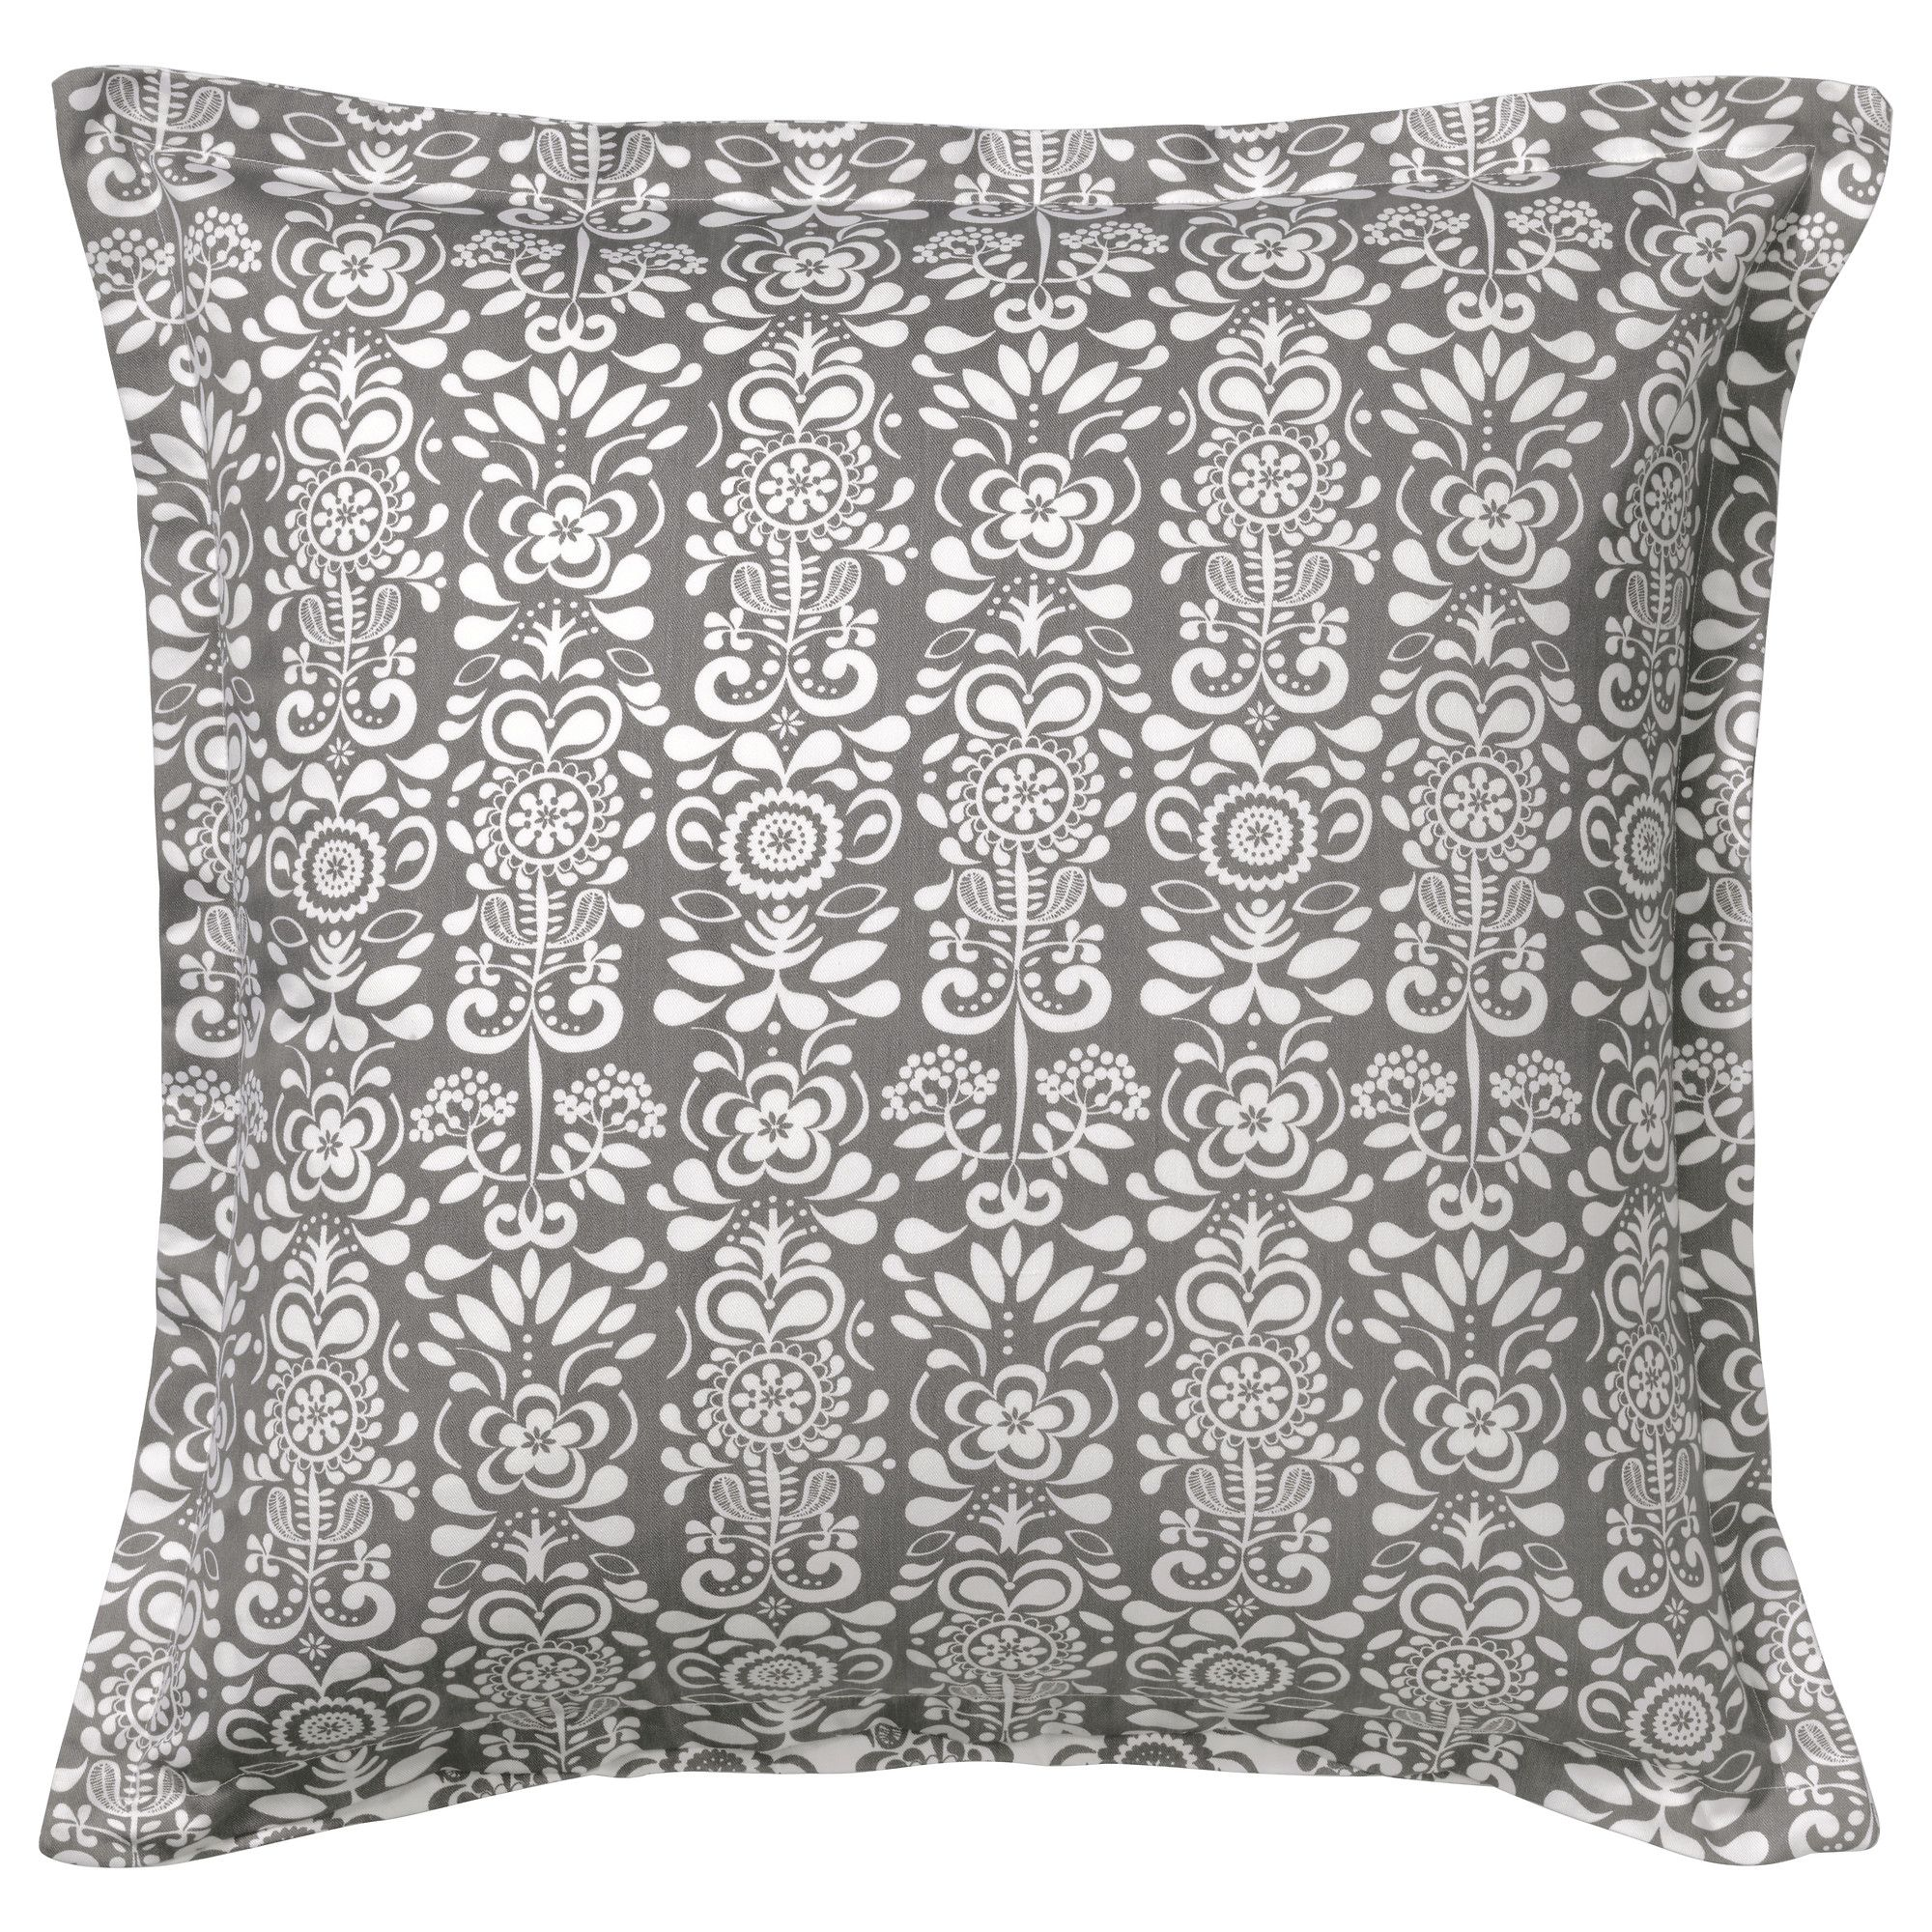 Refresh Any Room With Bold Pillows The IKEA KERKULLA Cushion Cover Has A Zipper Which